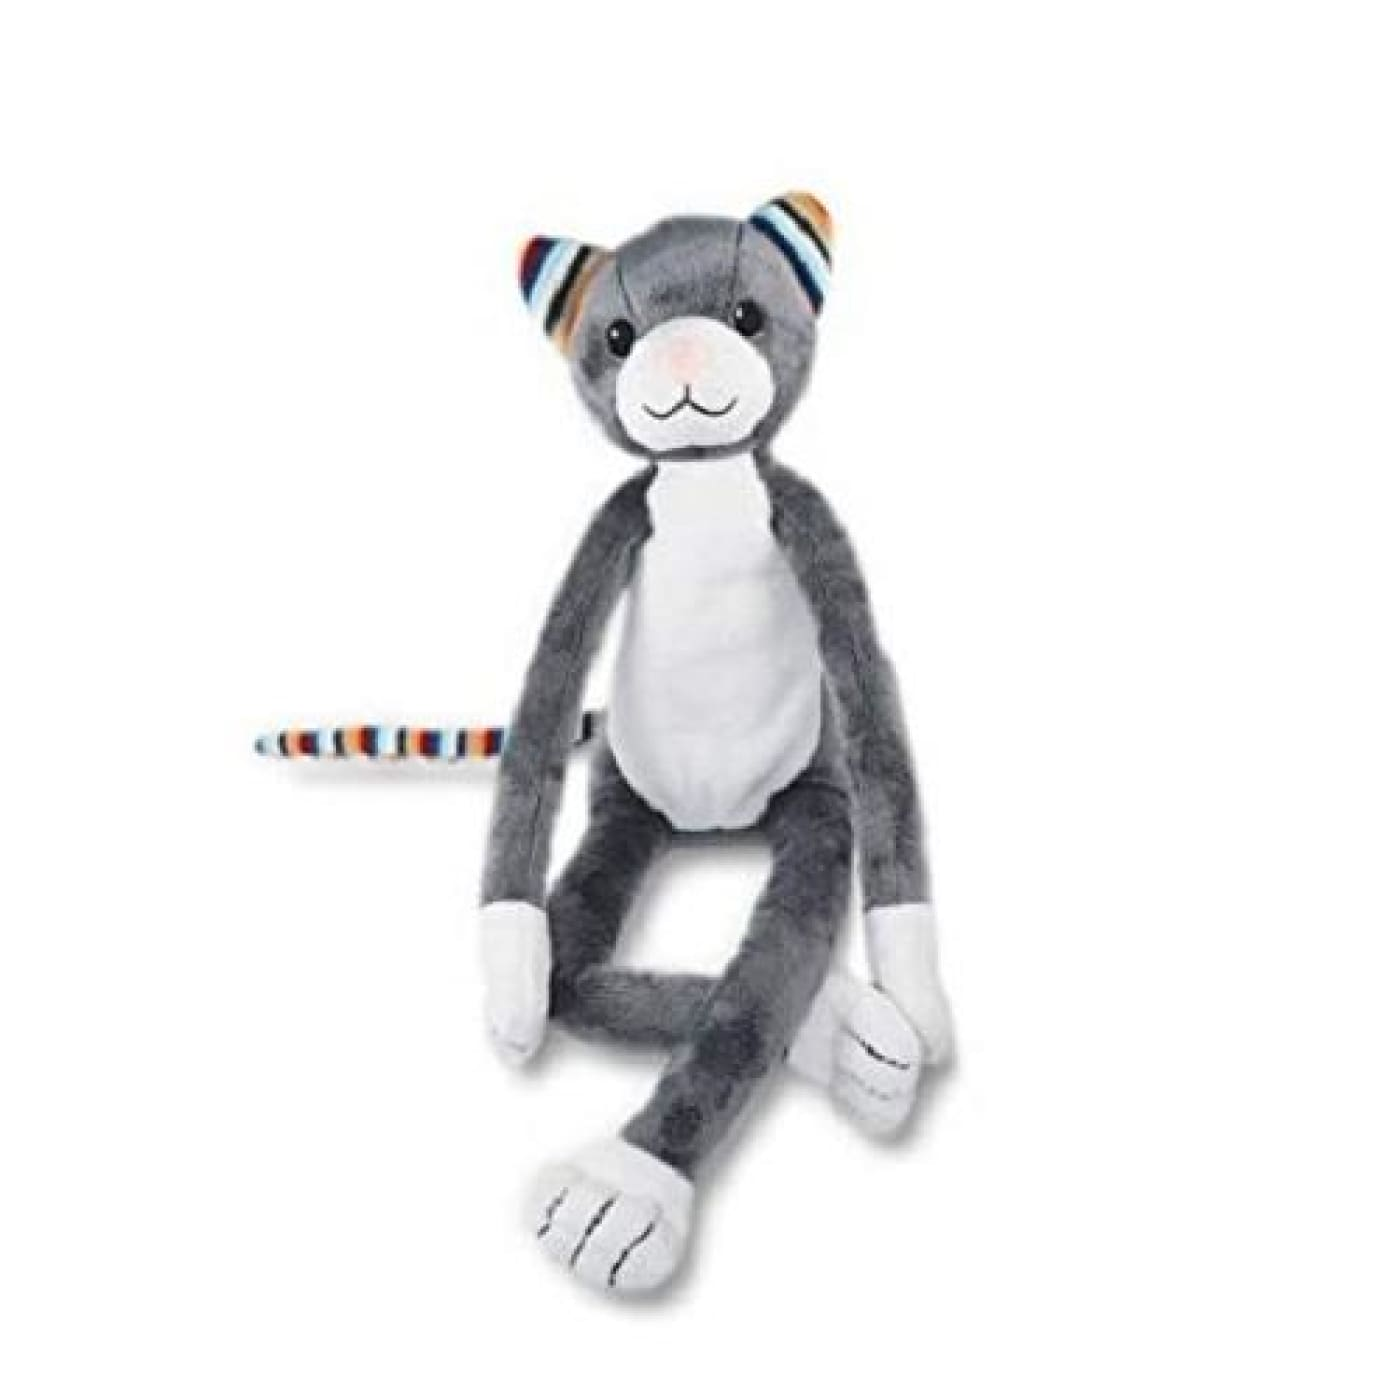 Zazu Soft Toy Nightlight with Melodies - Katie - Cat - NURSERY & BEDTIME - SLEEP AIDS/NIGHT LIGHTS